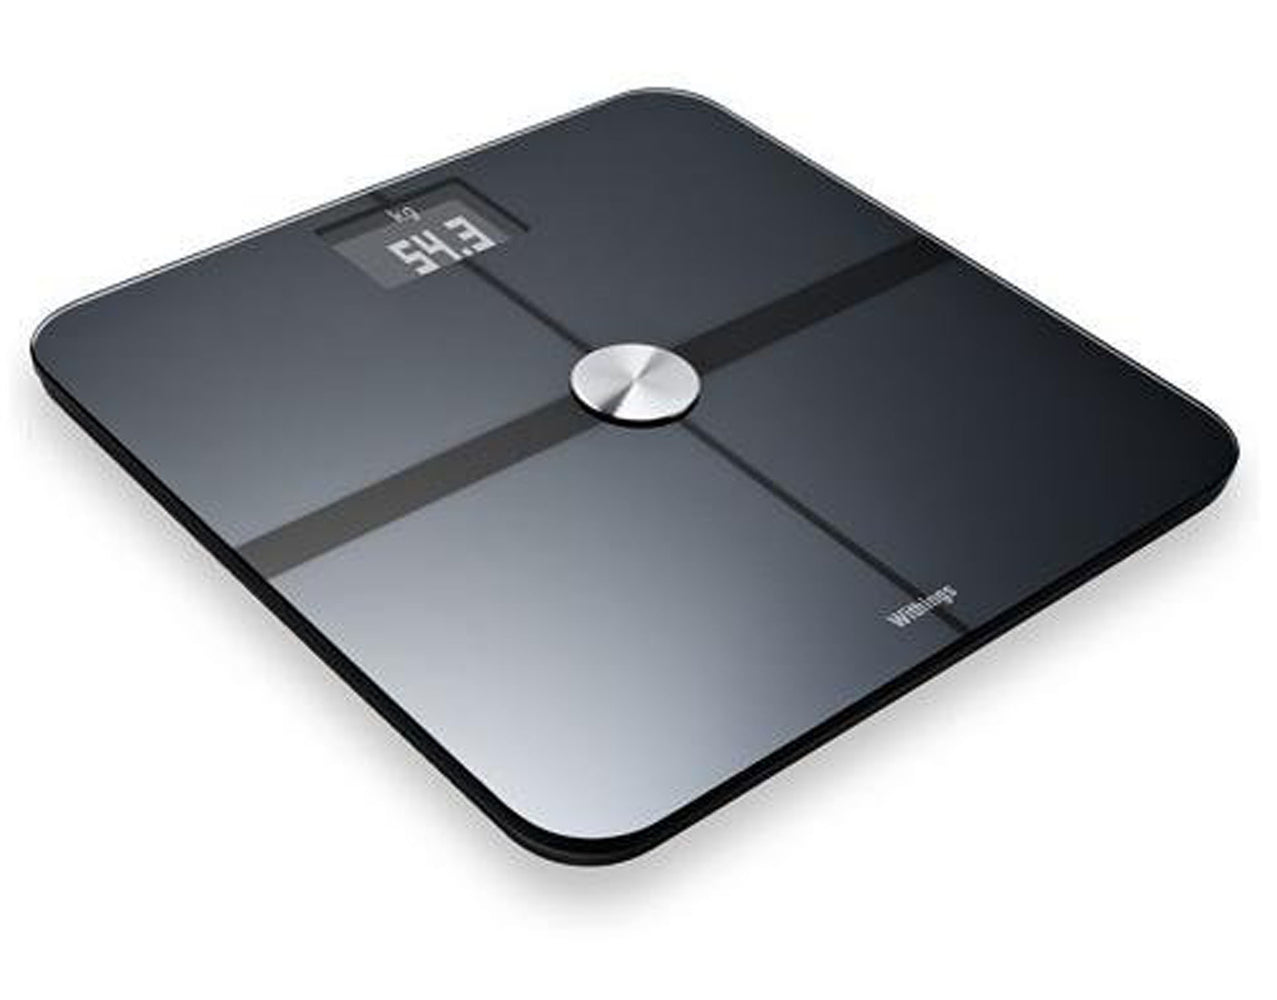 Withings Smart Body Analyser